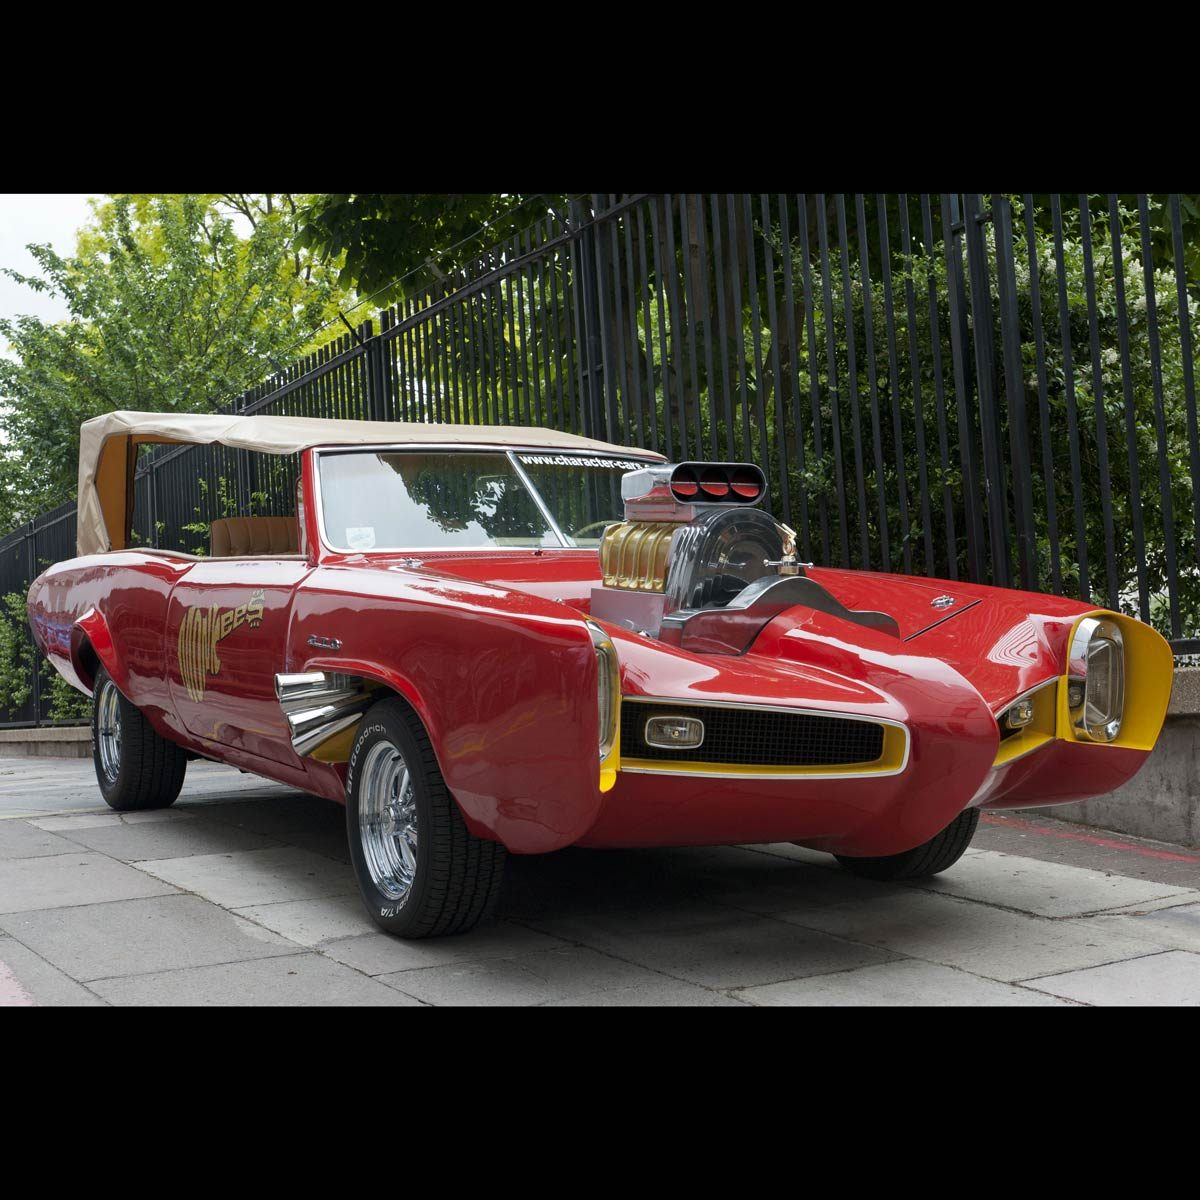 """A red Pontiac GTO used in the television show """"The Monkees"""""""